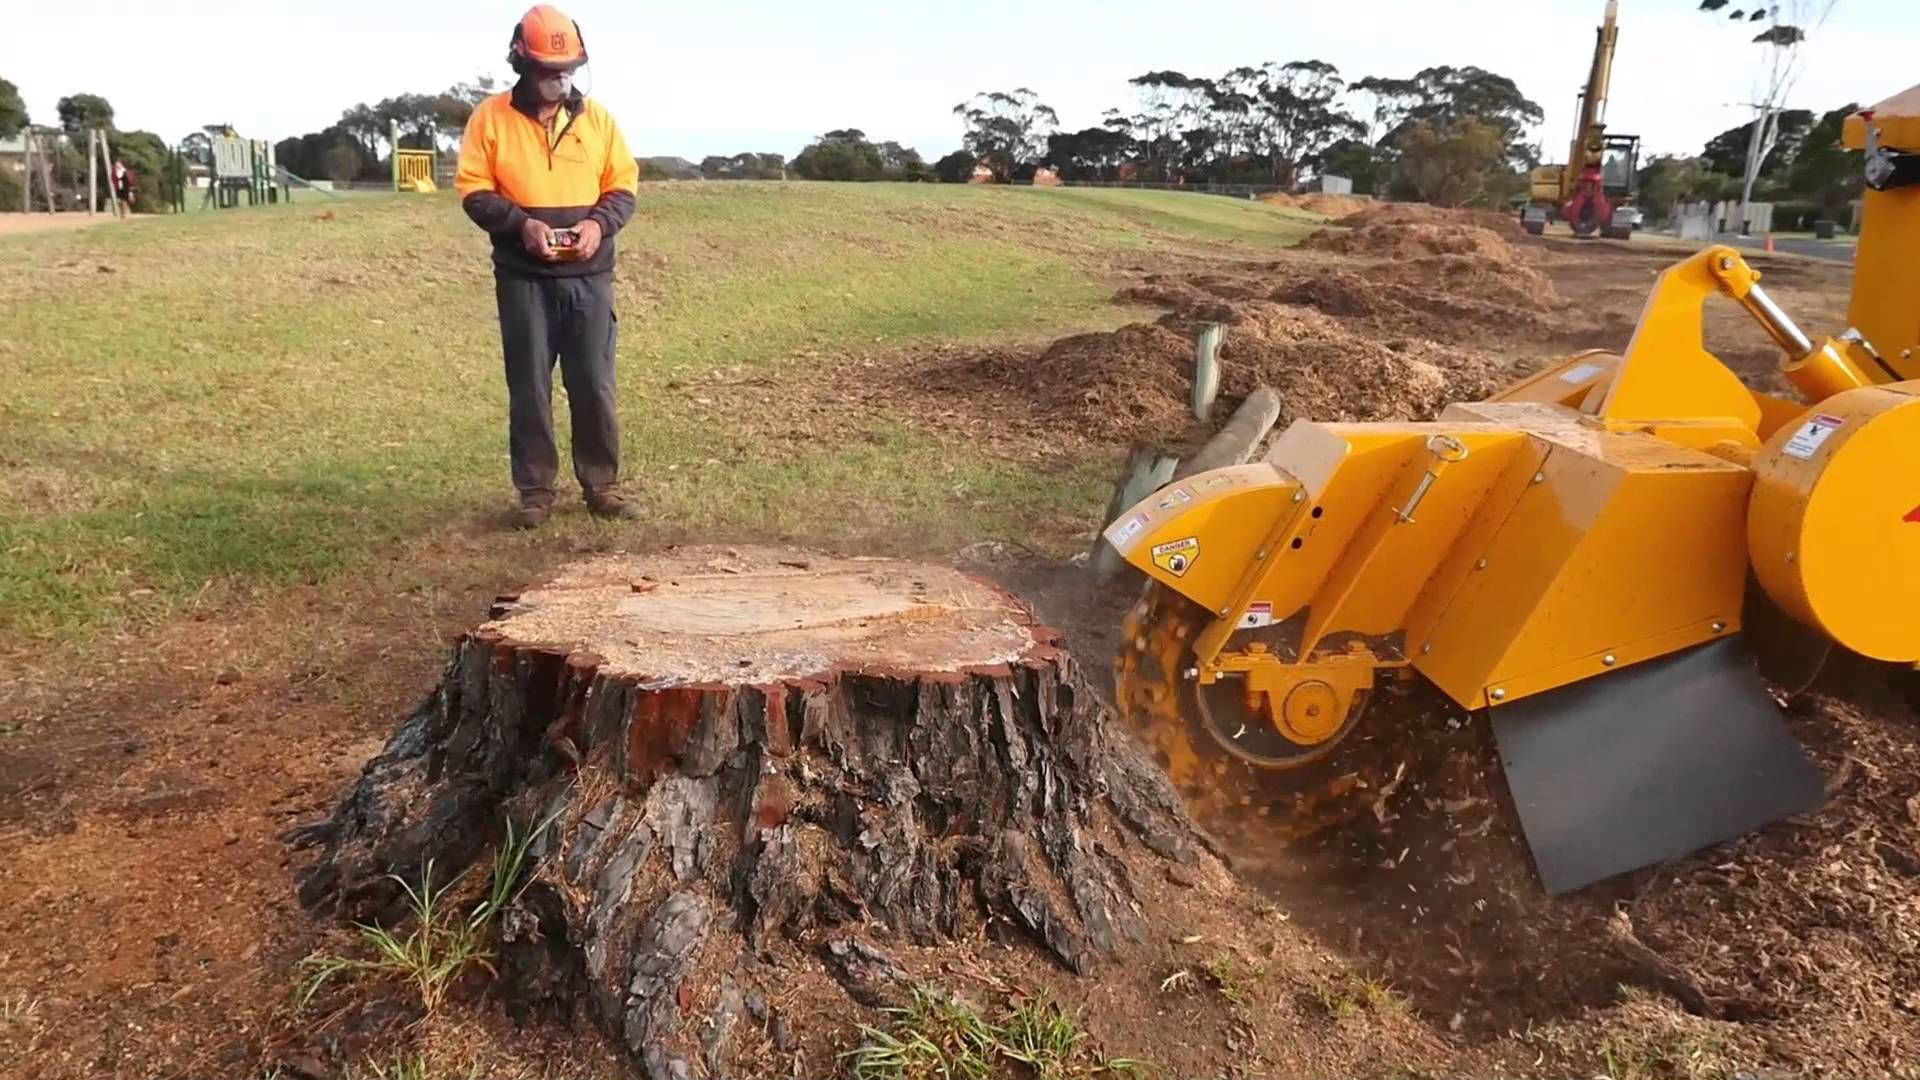 A #Treestump Is The Small Portion Of The Trunk Connected